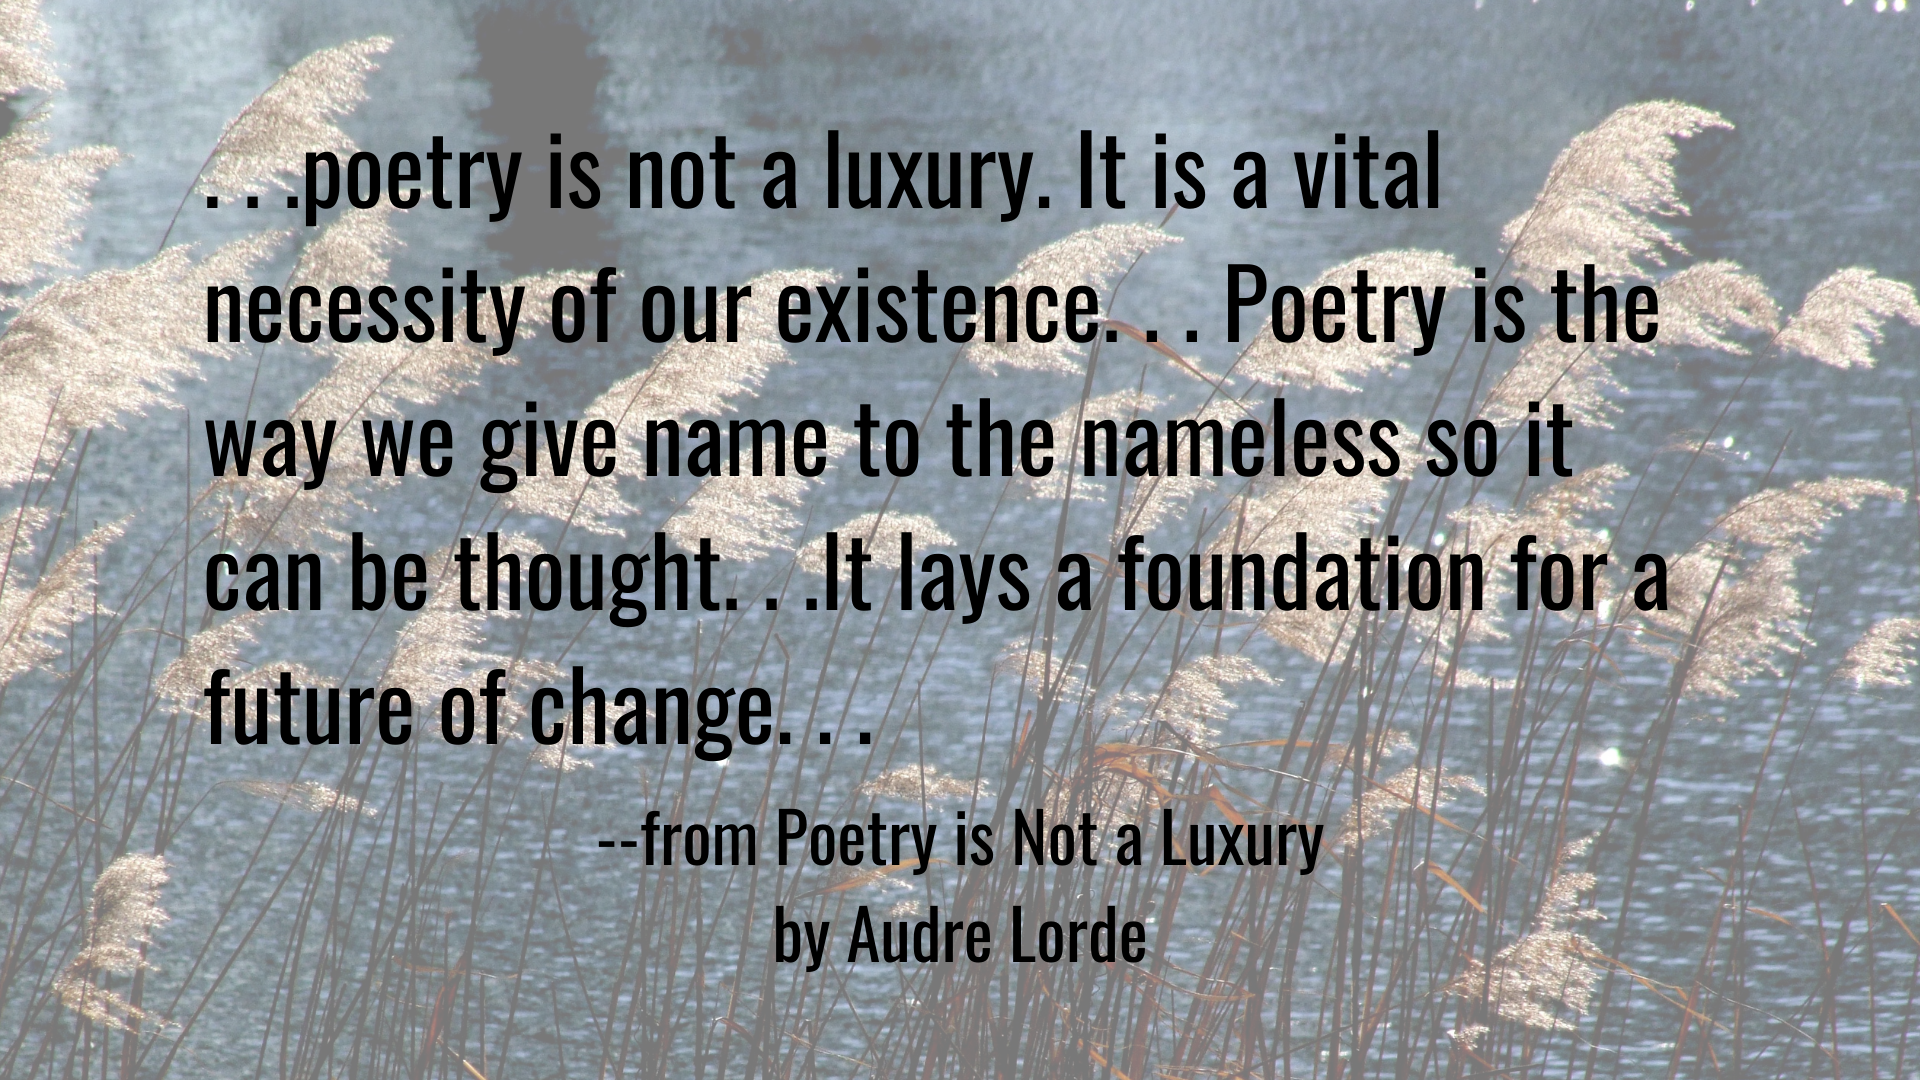 poetry is not a luxury. It is a vital necessity of our existence. . . Poetry is the way we give name to the nameless so it can be thought. . .It lays a foundation for a future of change. . .Quote from Audre Lorde